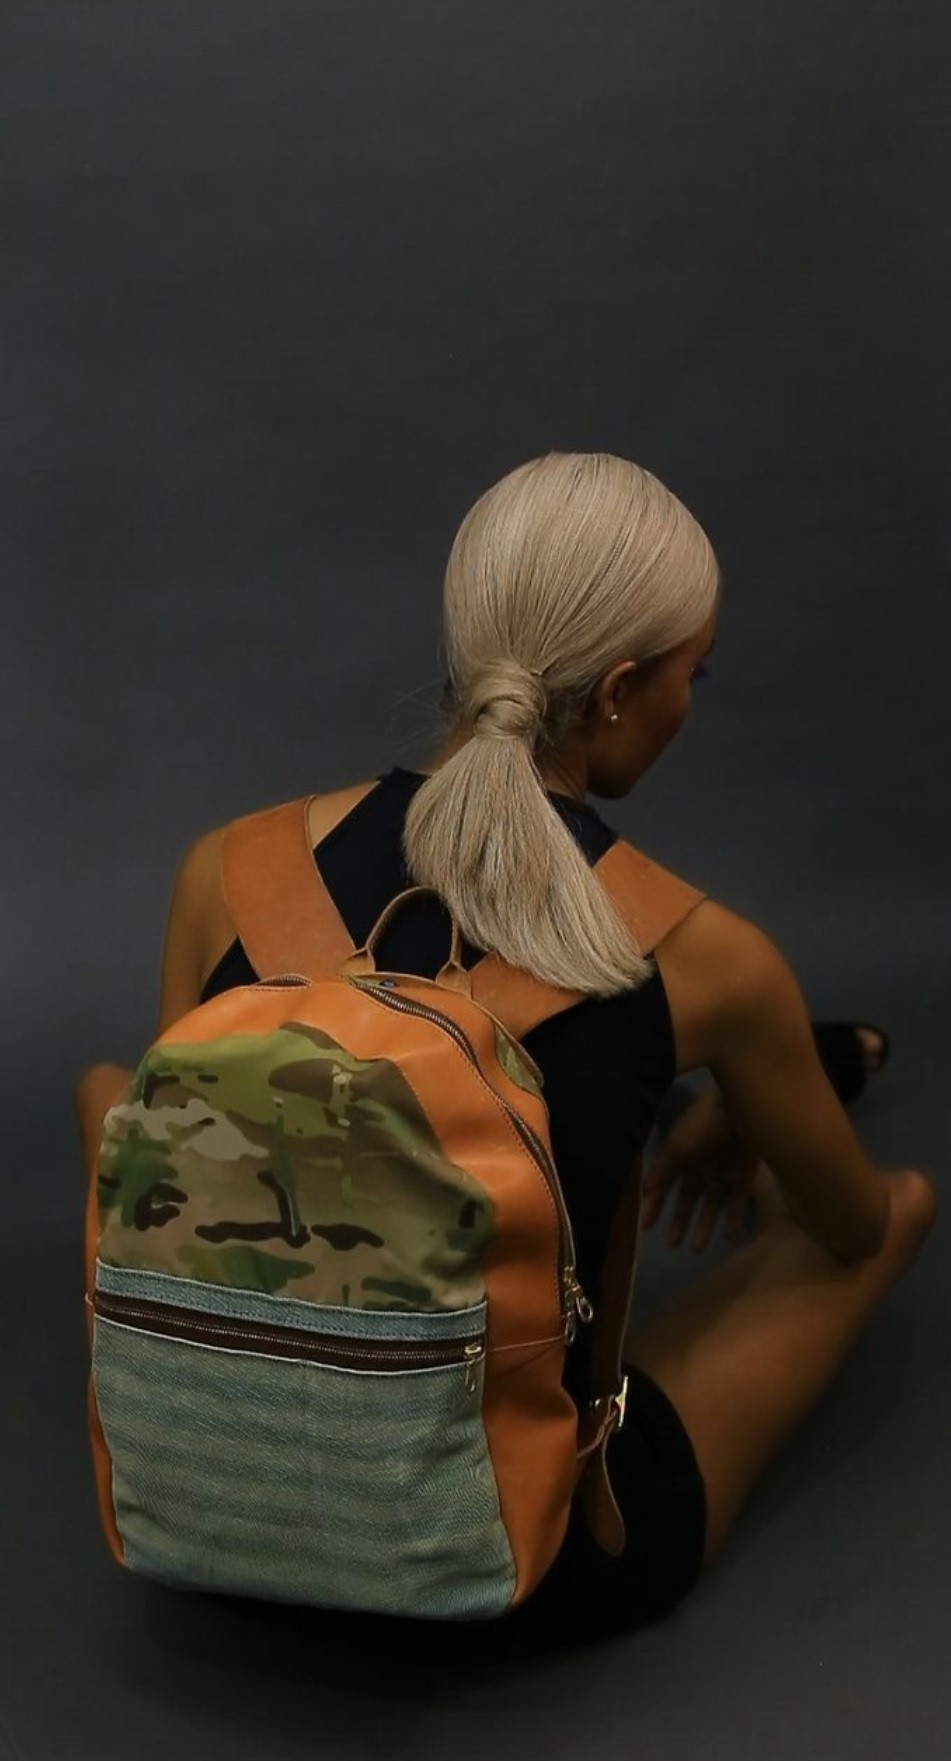 ca5b74640242 This backpack can change its color on demand to match your mood. (Image  Courtesy